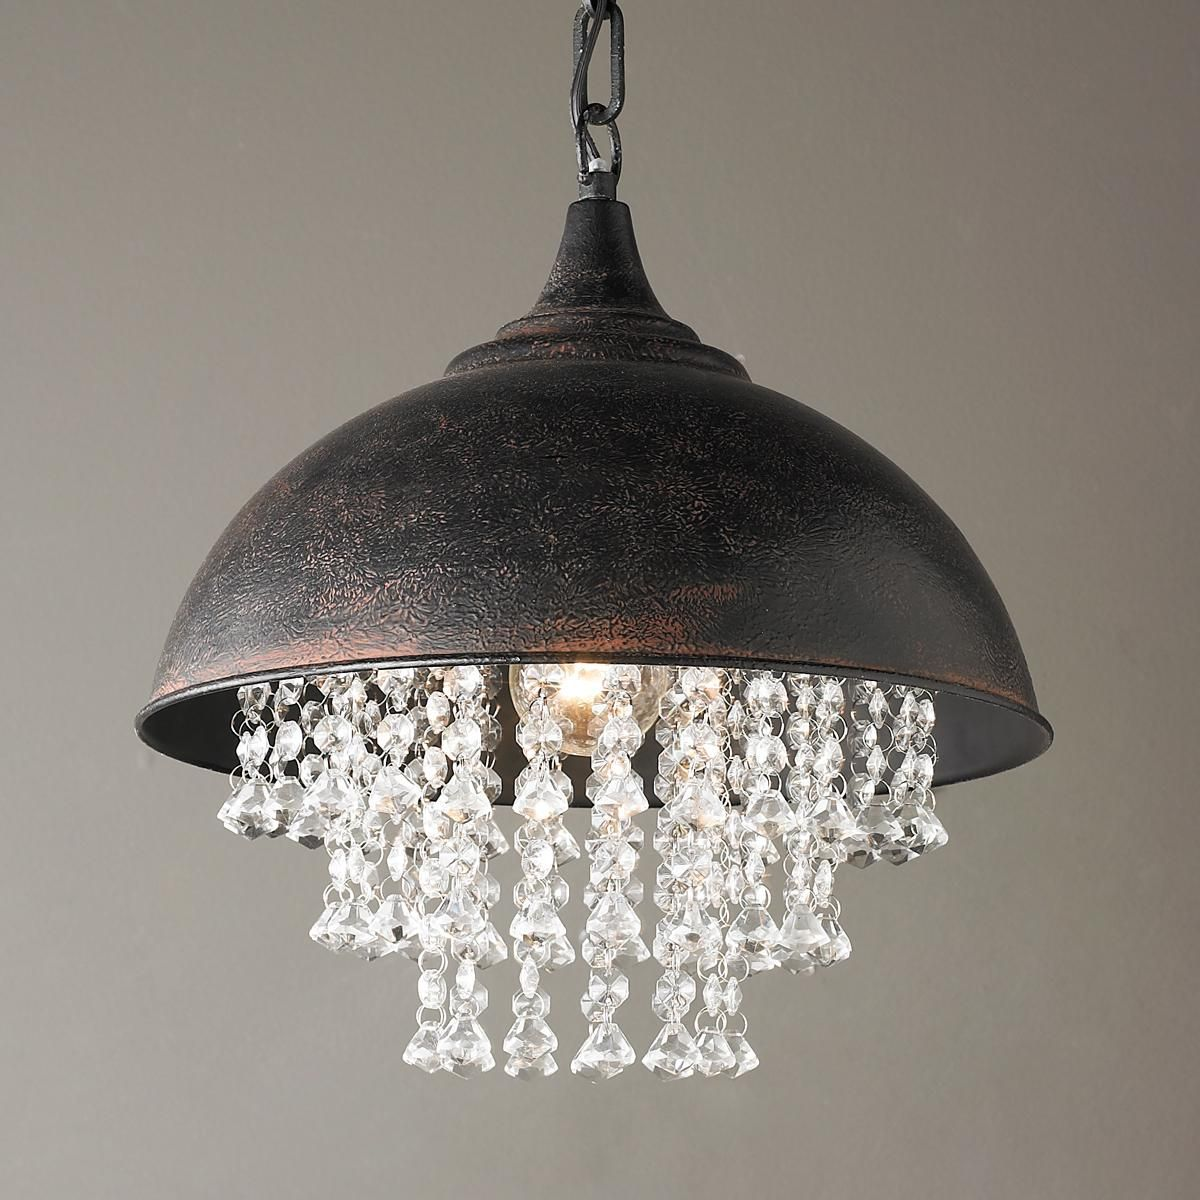 Bronze Kitchen Chandelier Cabinets In Stock Metal Dome Pendant With Crystals Industrial Chic